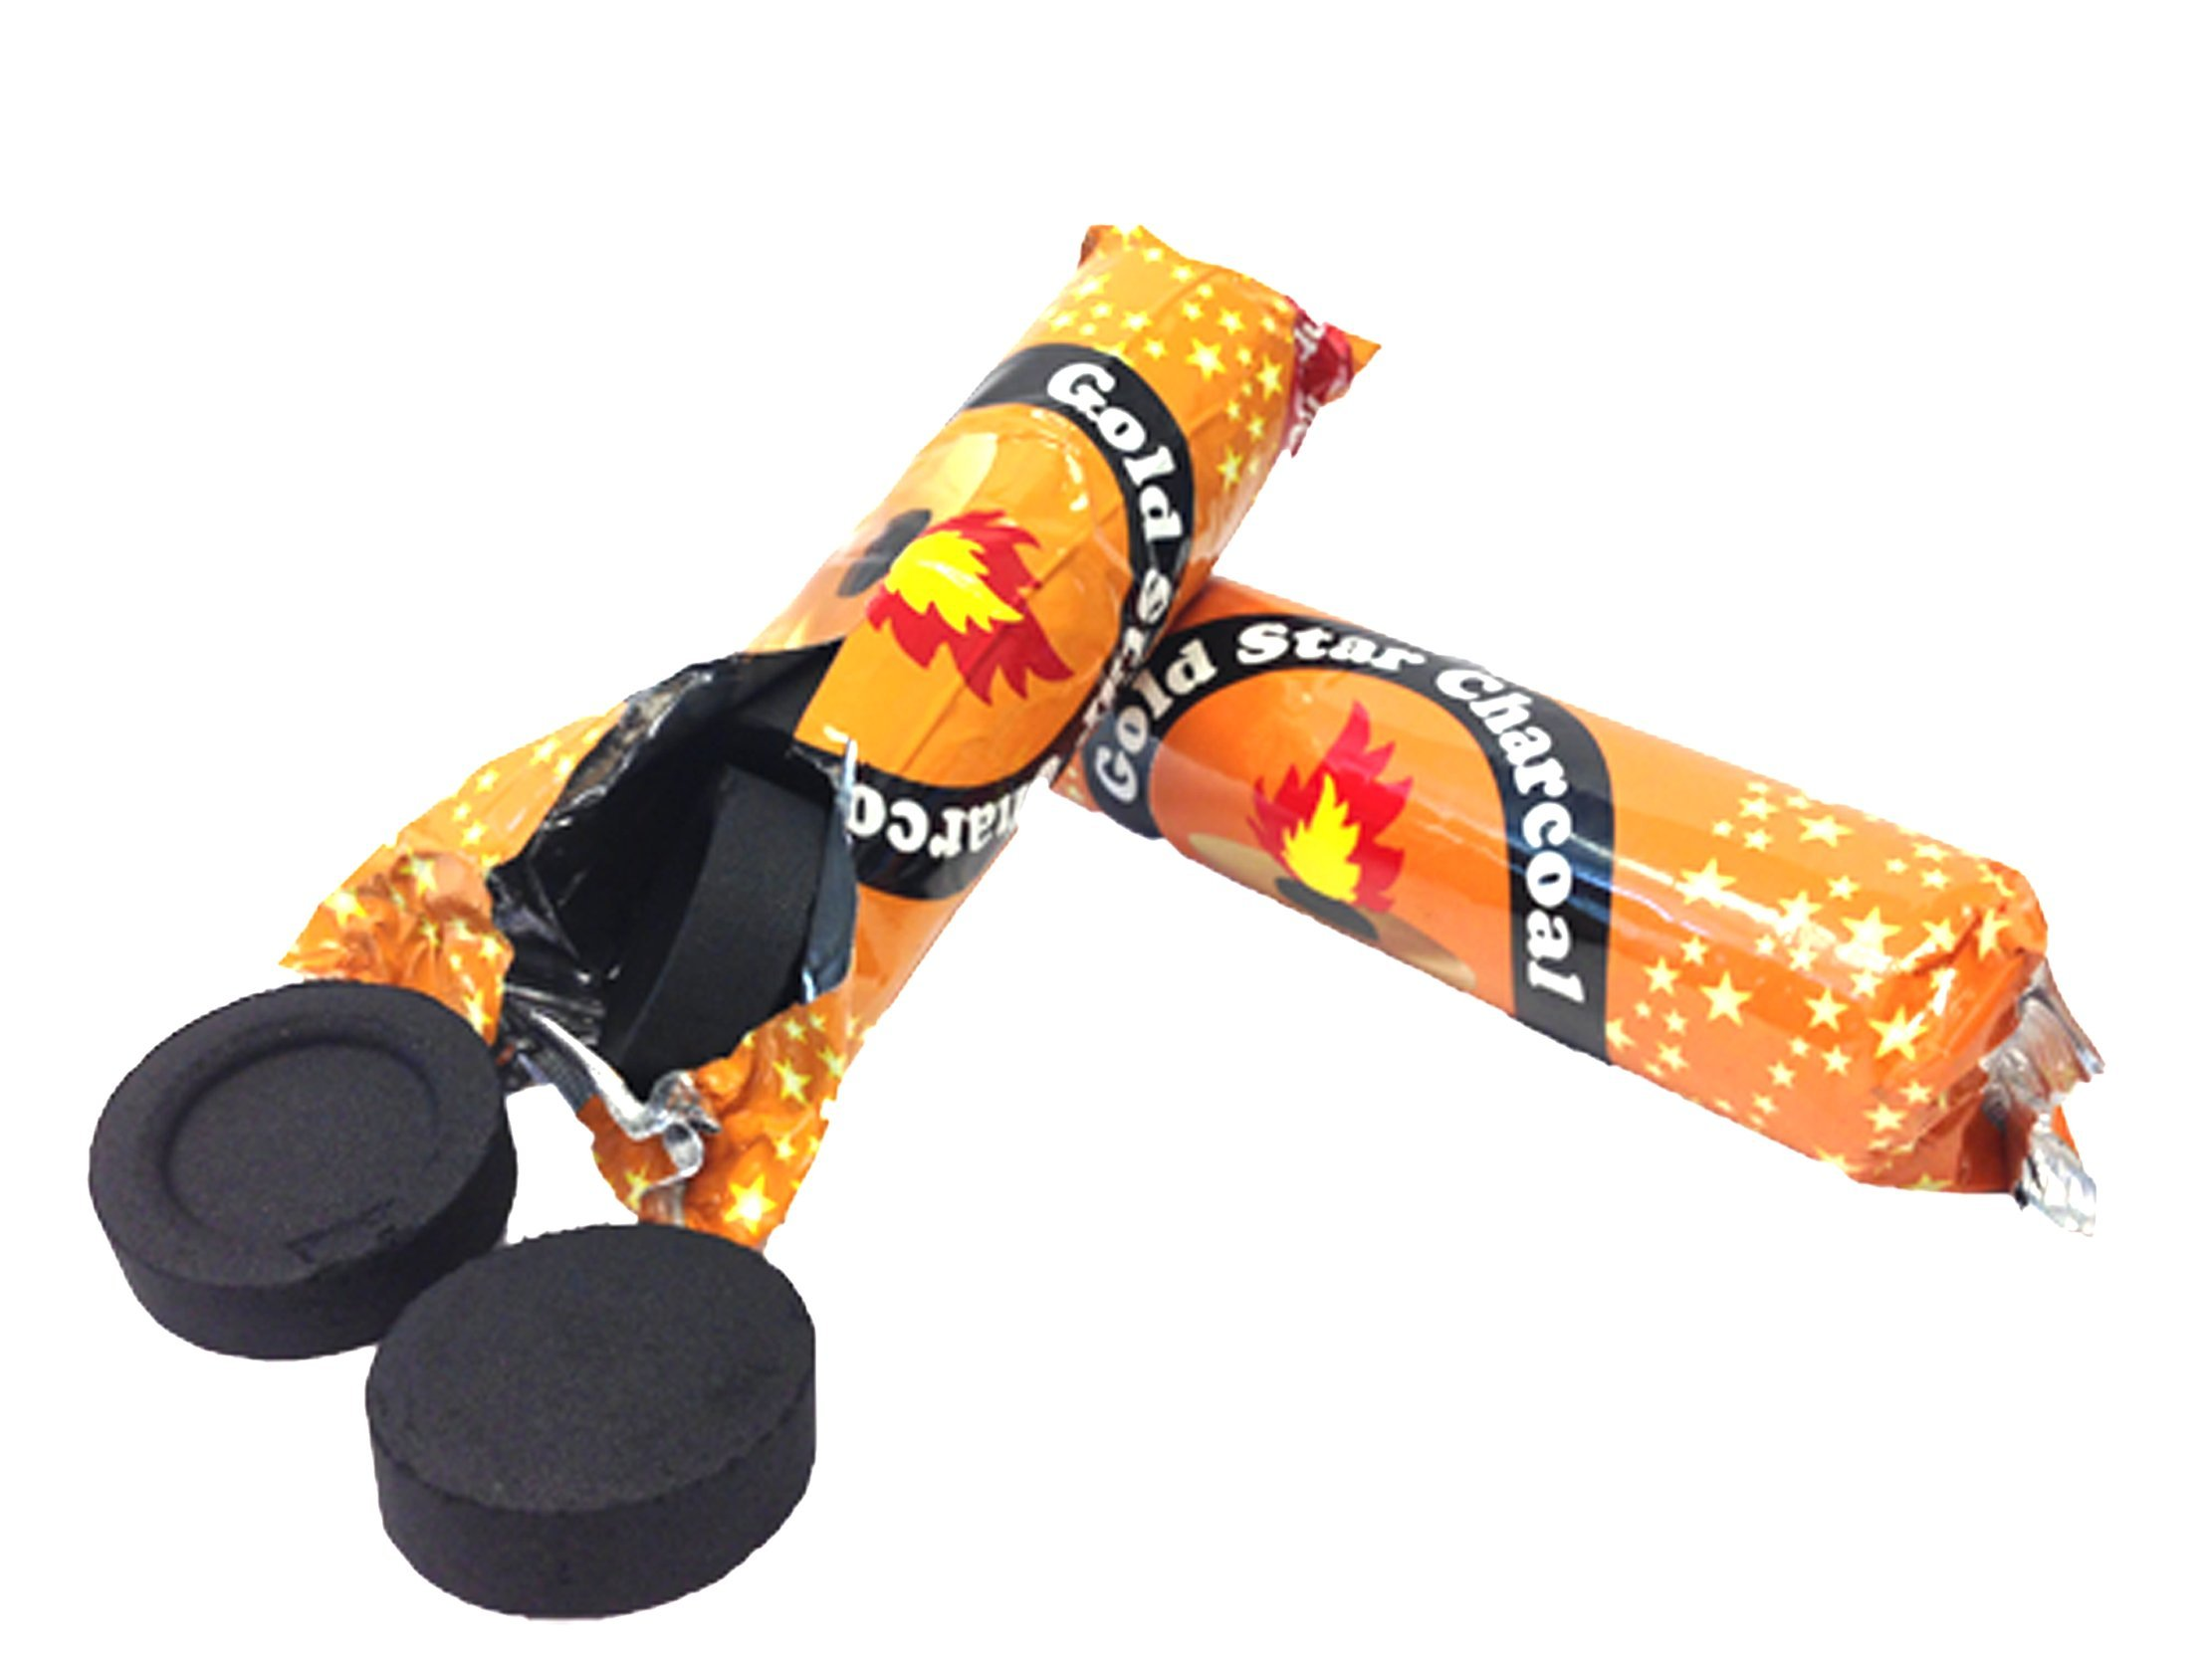 AUTHENTIC- Gold Star 40 Mm Shisha Hookah Incense Charcoal 10 Roll 100 pieces